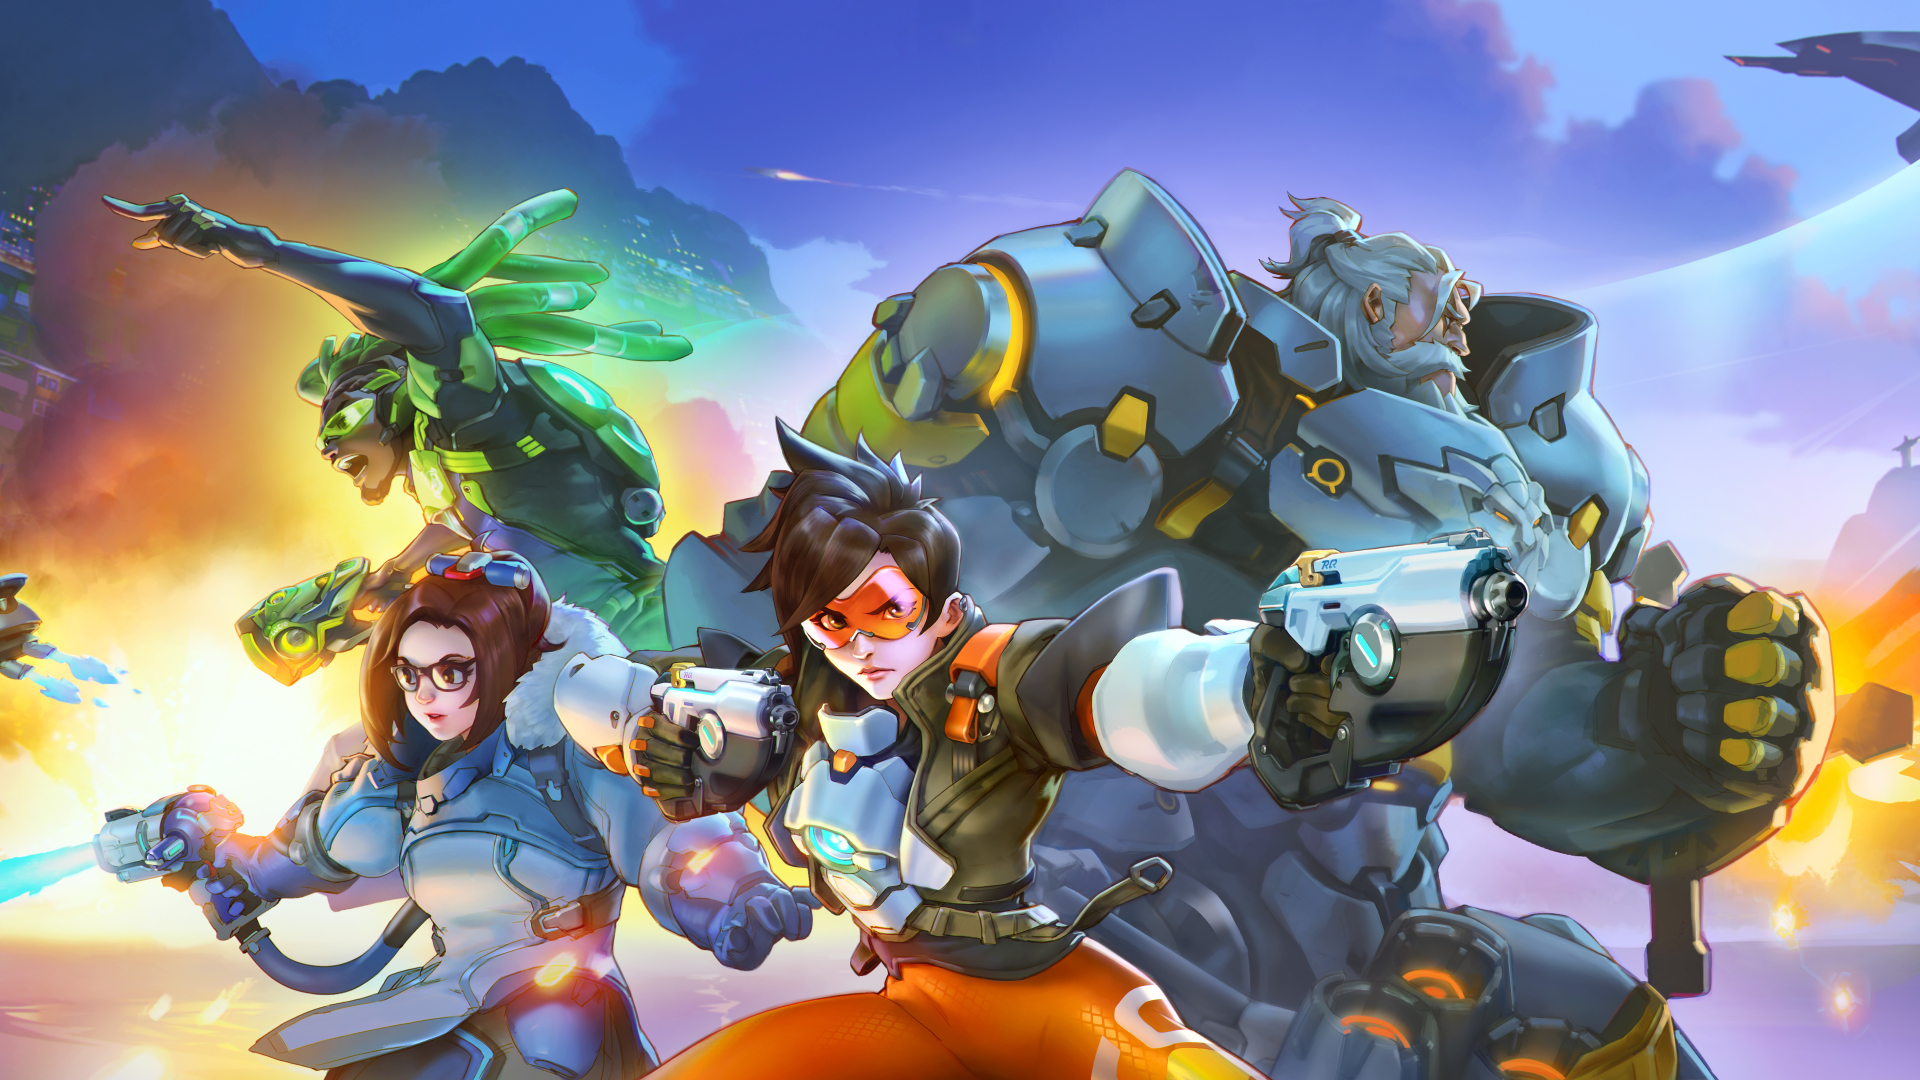 1920x1080 Overwatch 2 Heroes 1080p Laptop Full Hd Wallpaper